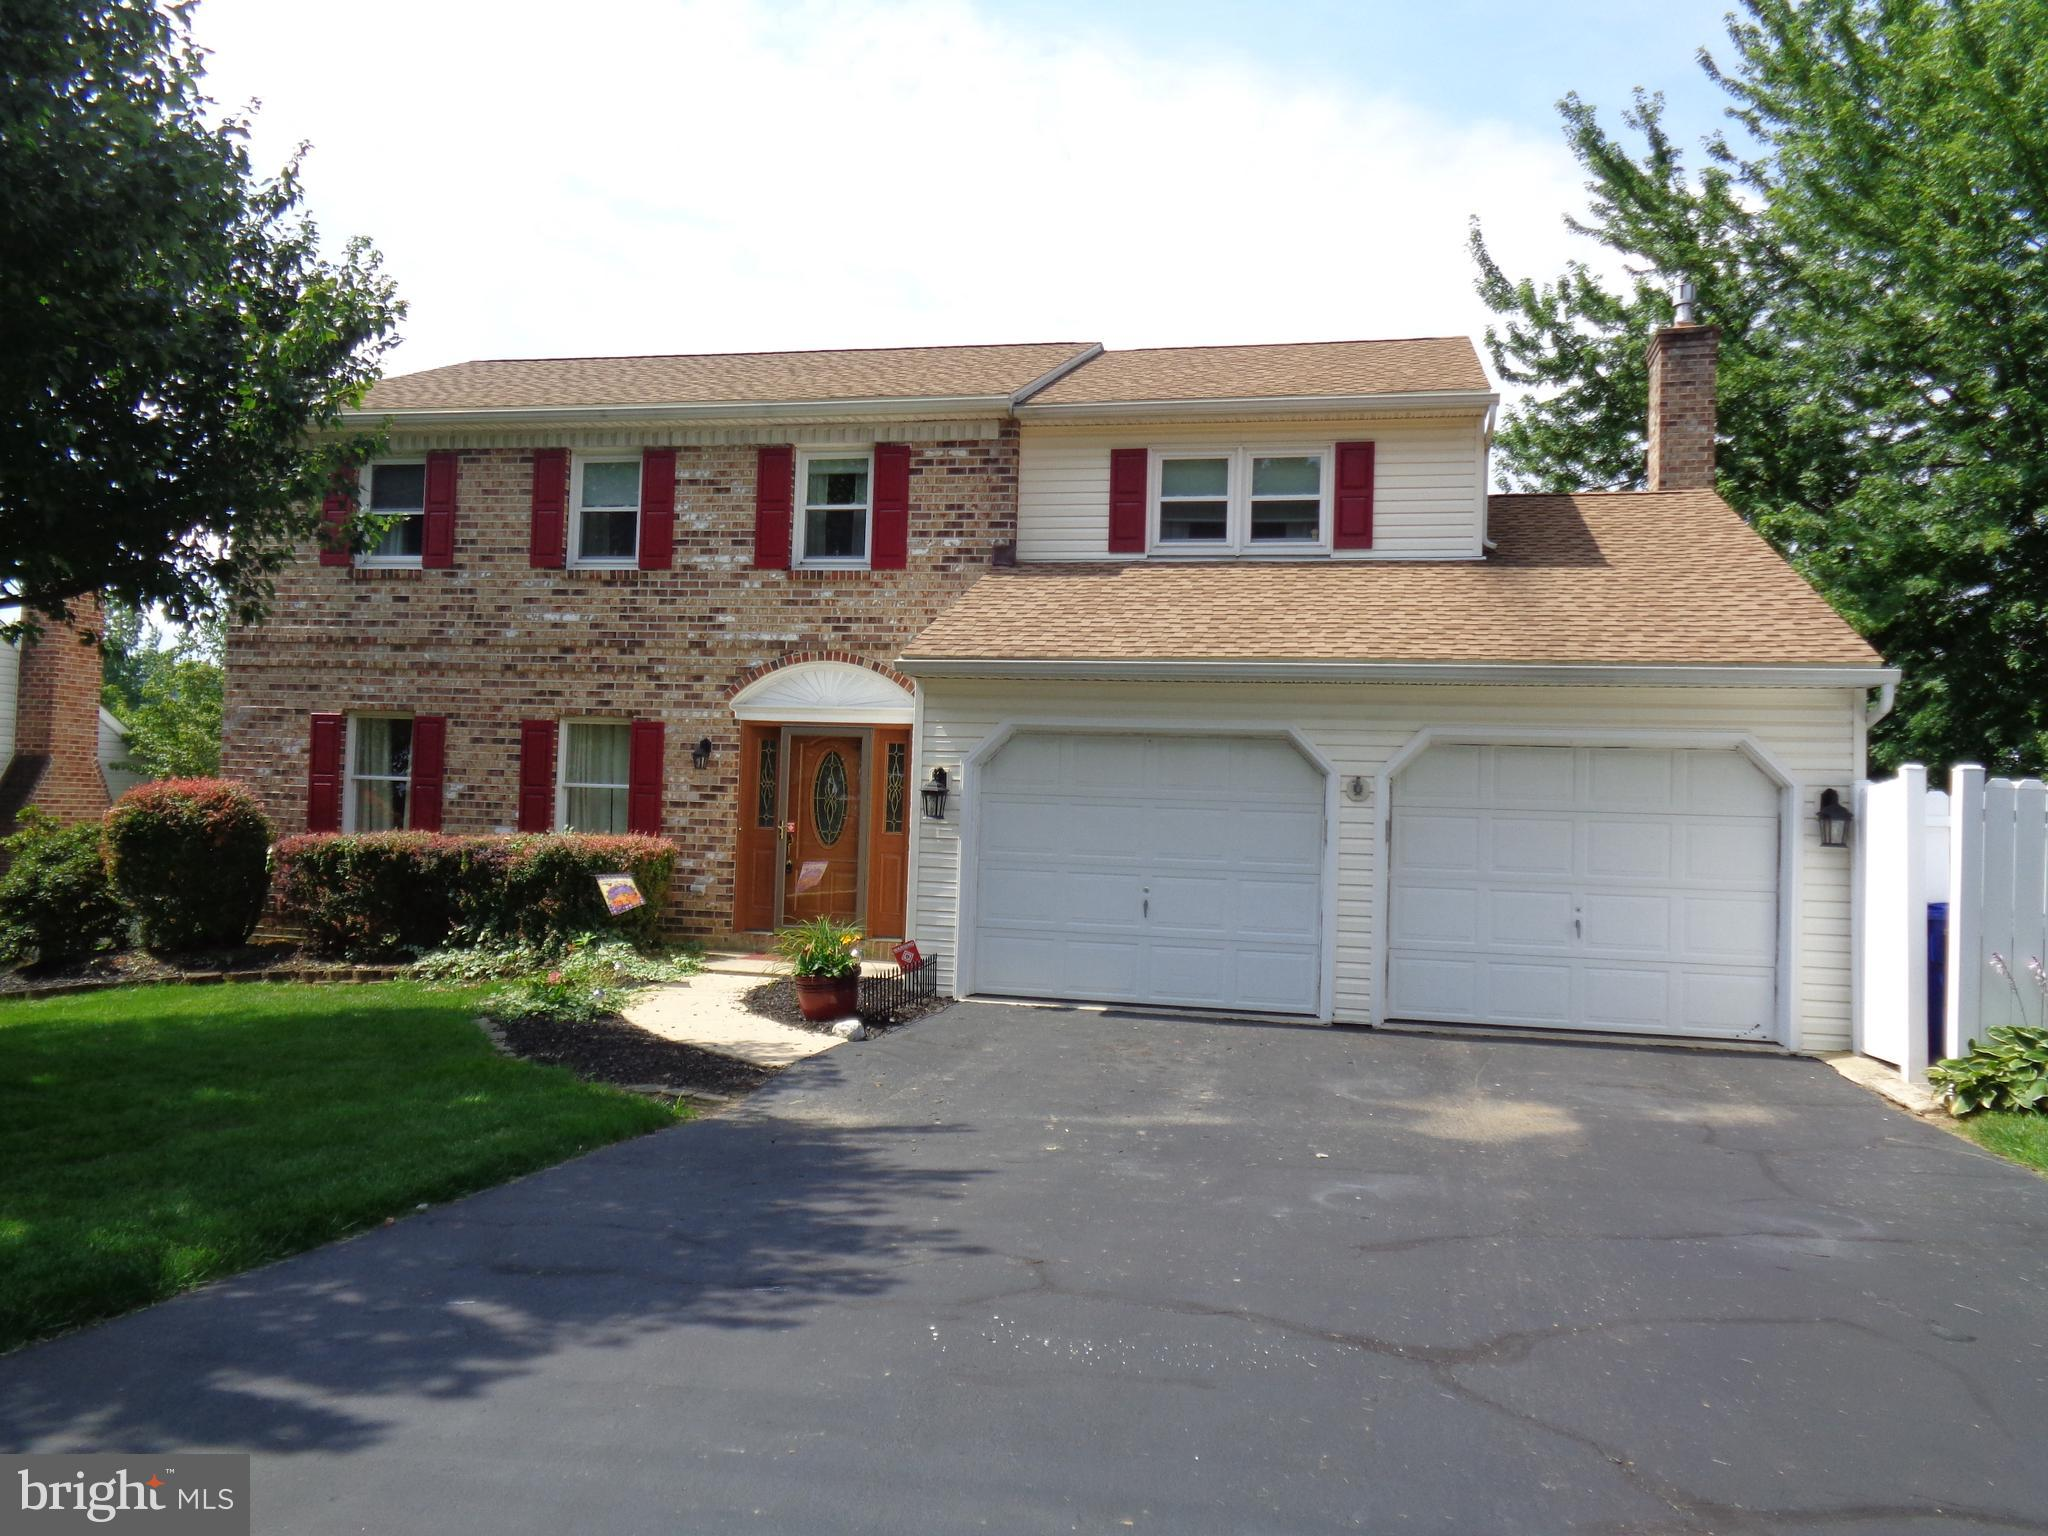 440 LINCOLN DRIVE, WERNERSVILLE, PA 19565